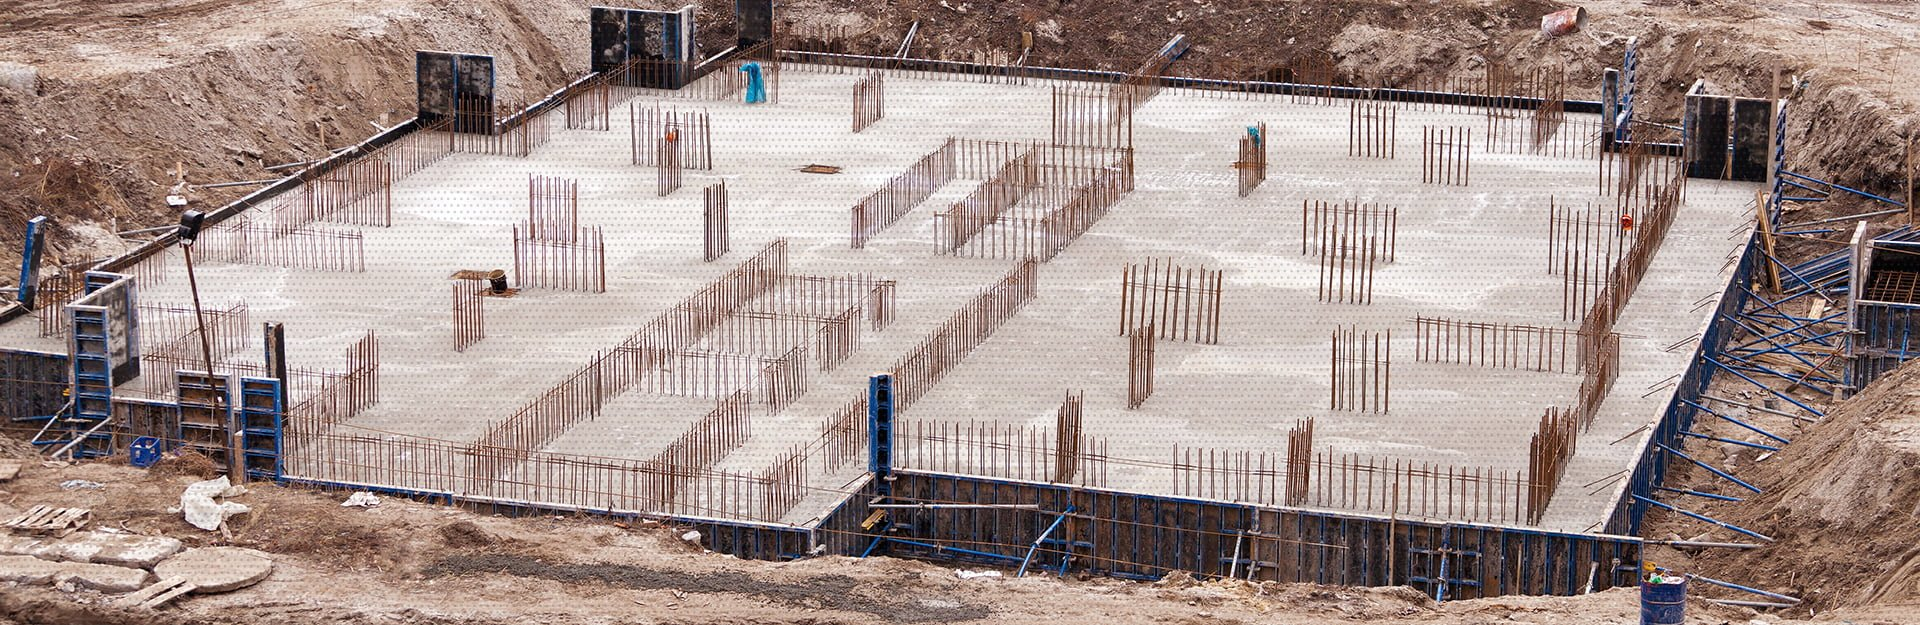 An AM Contracting job that has many footings in place for more structures to be built on top of the freshly dried concrete foundation structure.